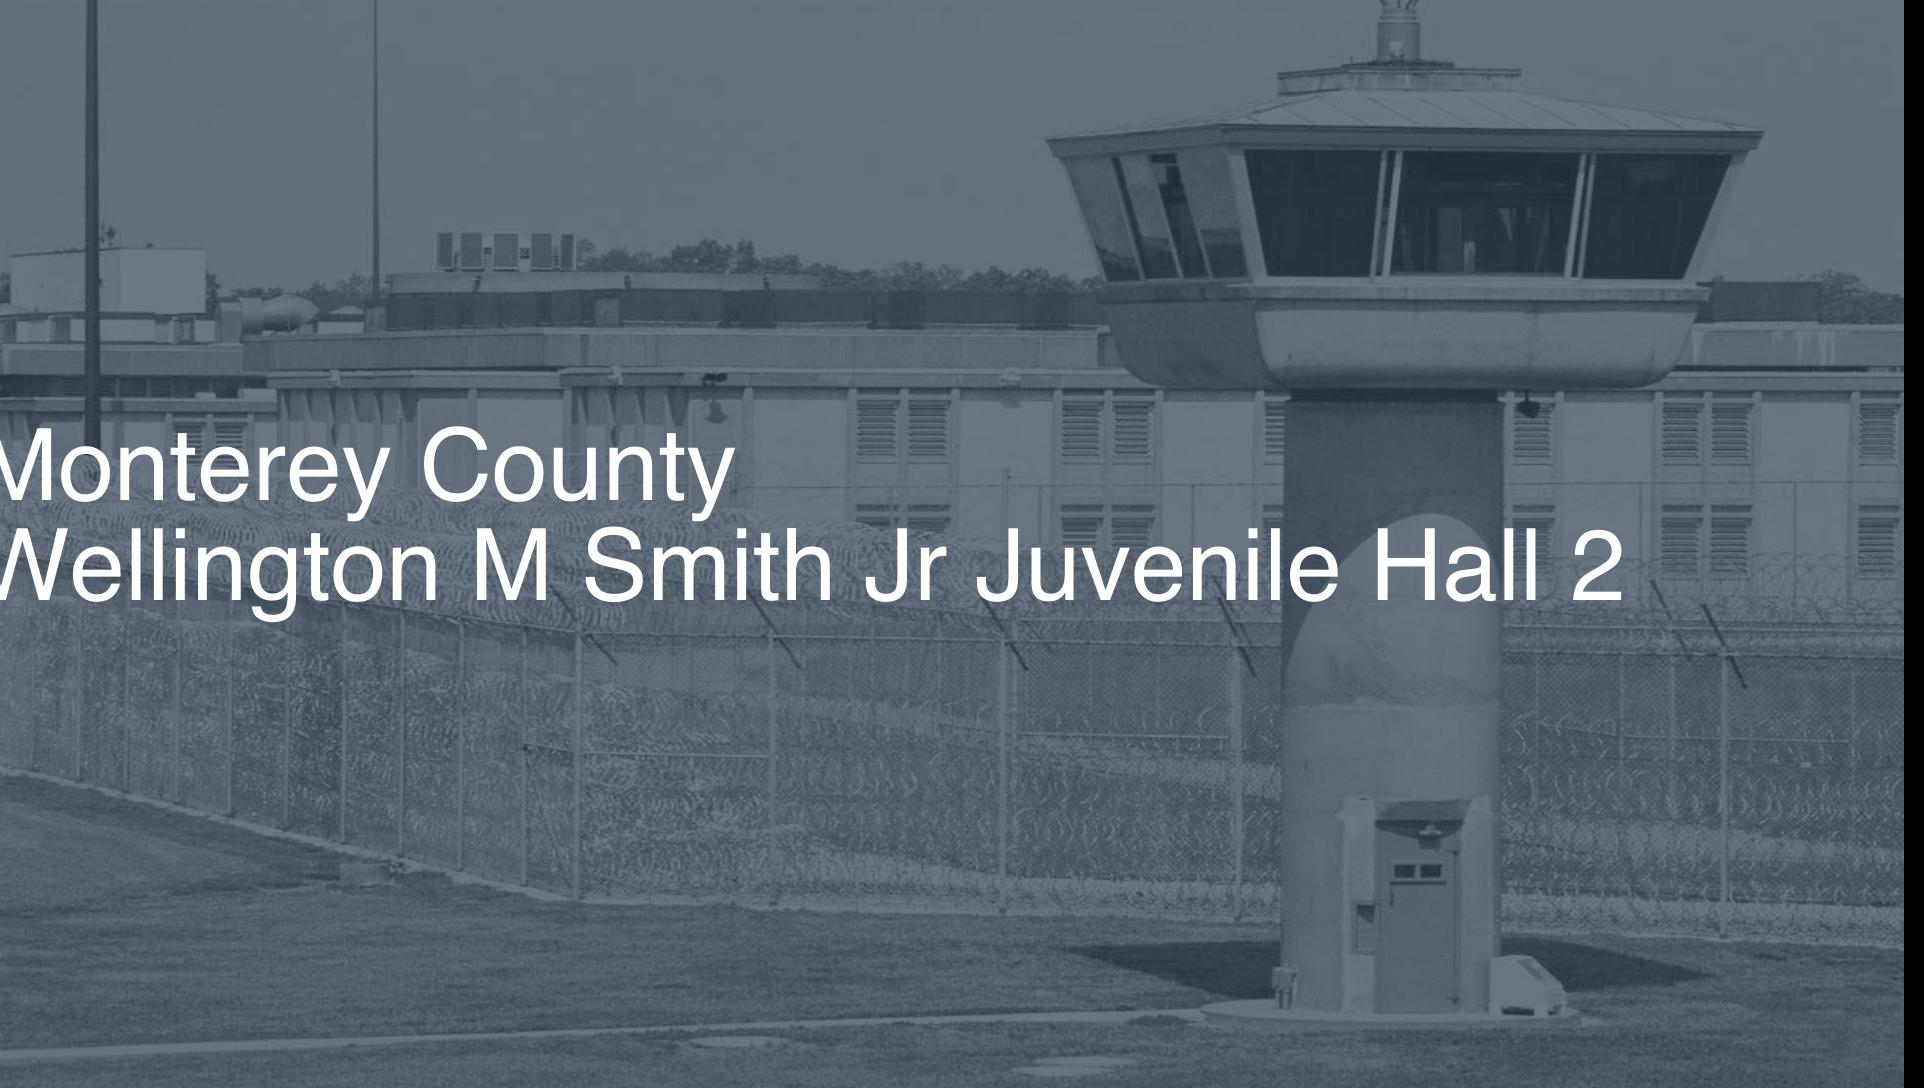 Monterey County - Wellington M. Smith, Jr. Juvenile Hall correctional facility picture